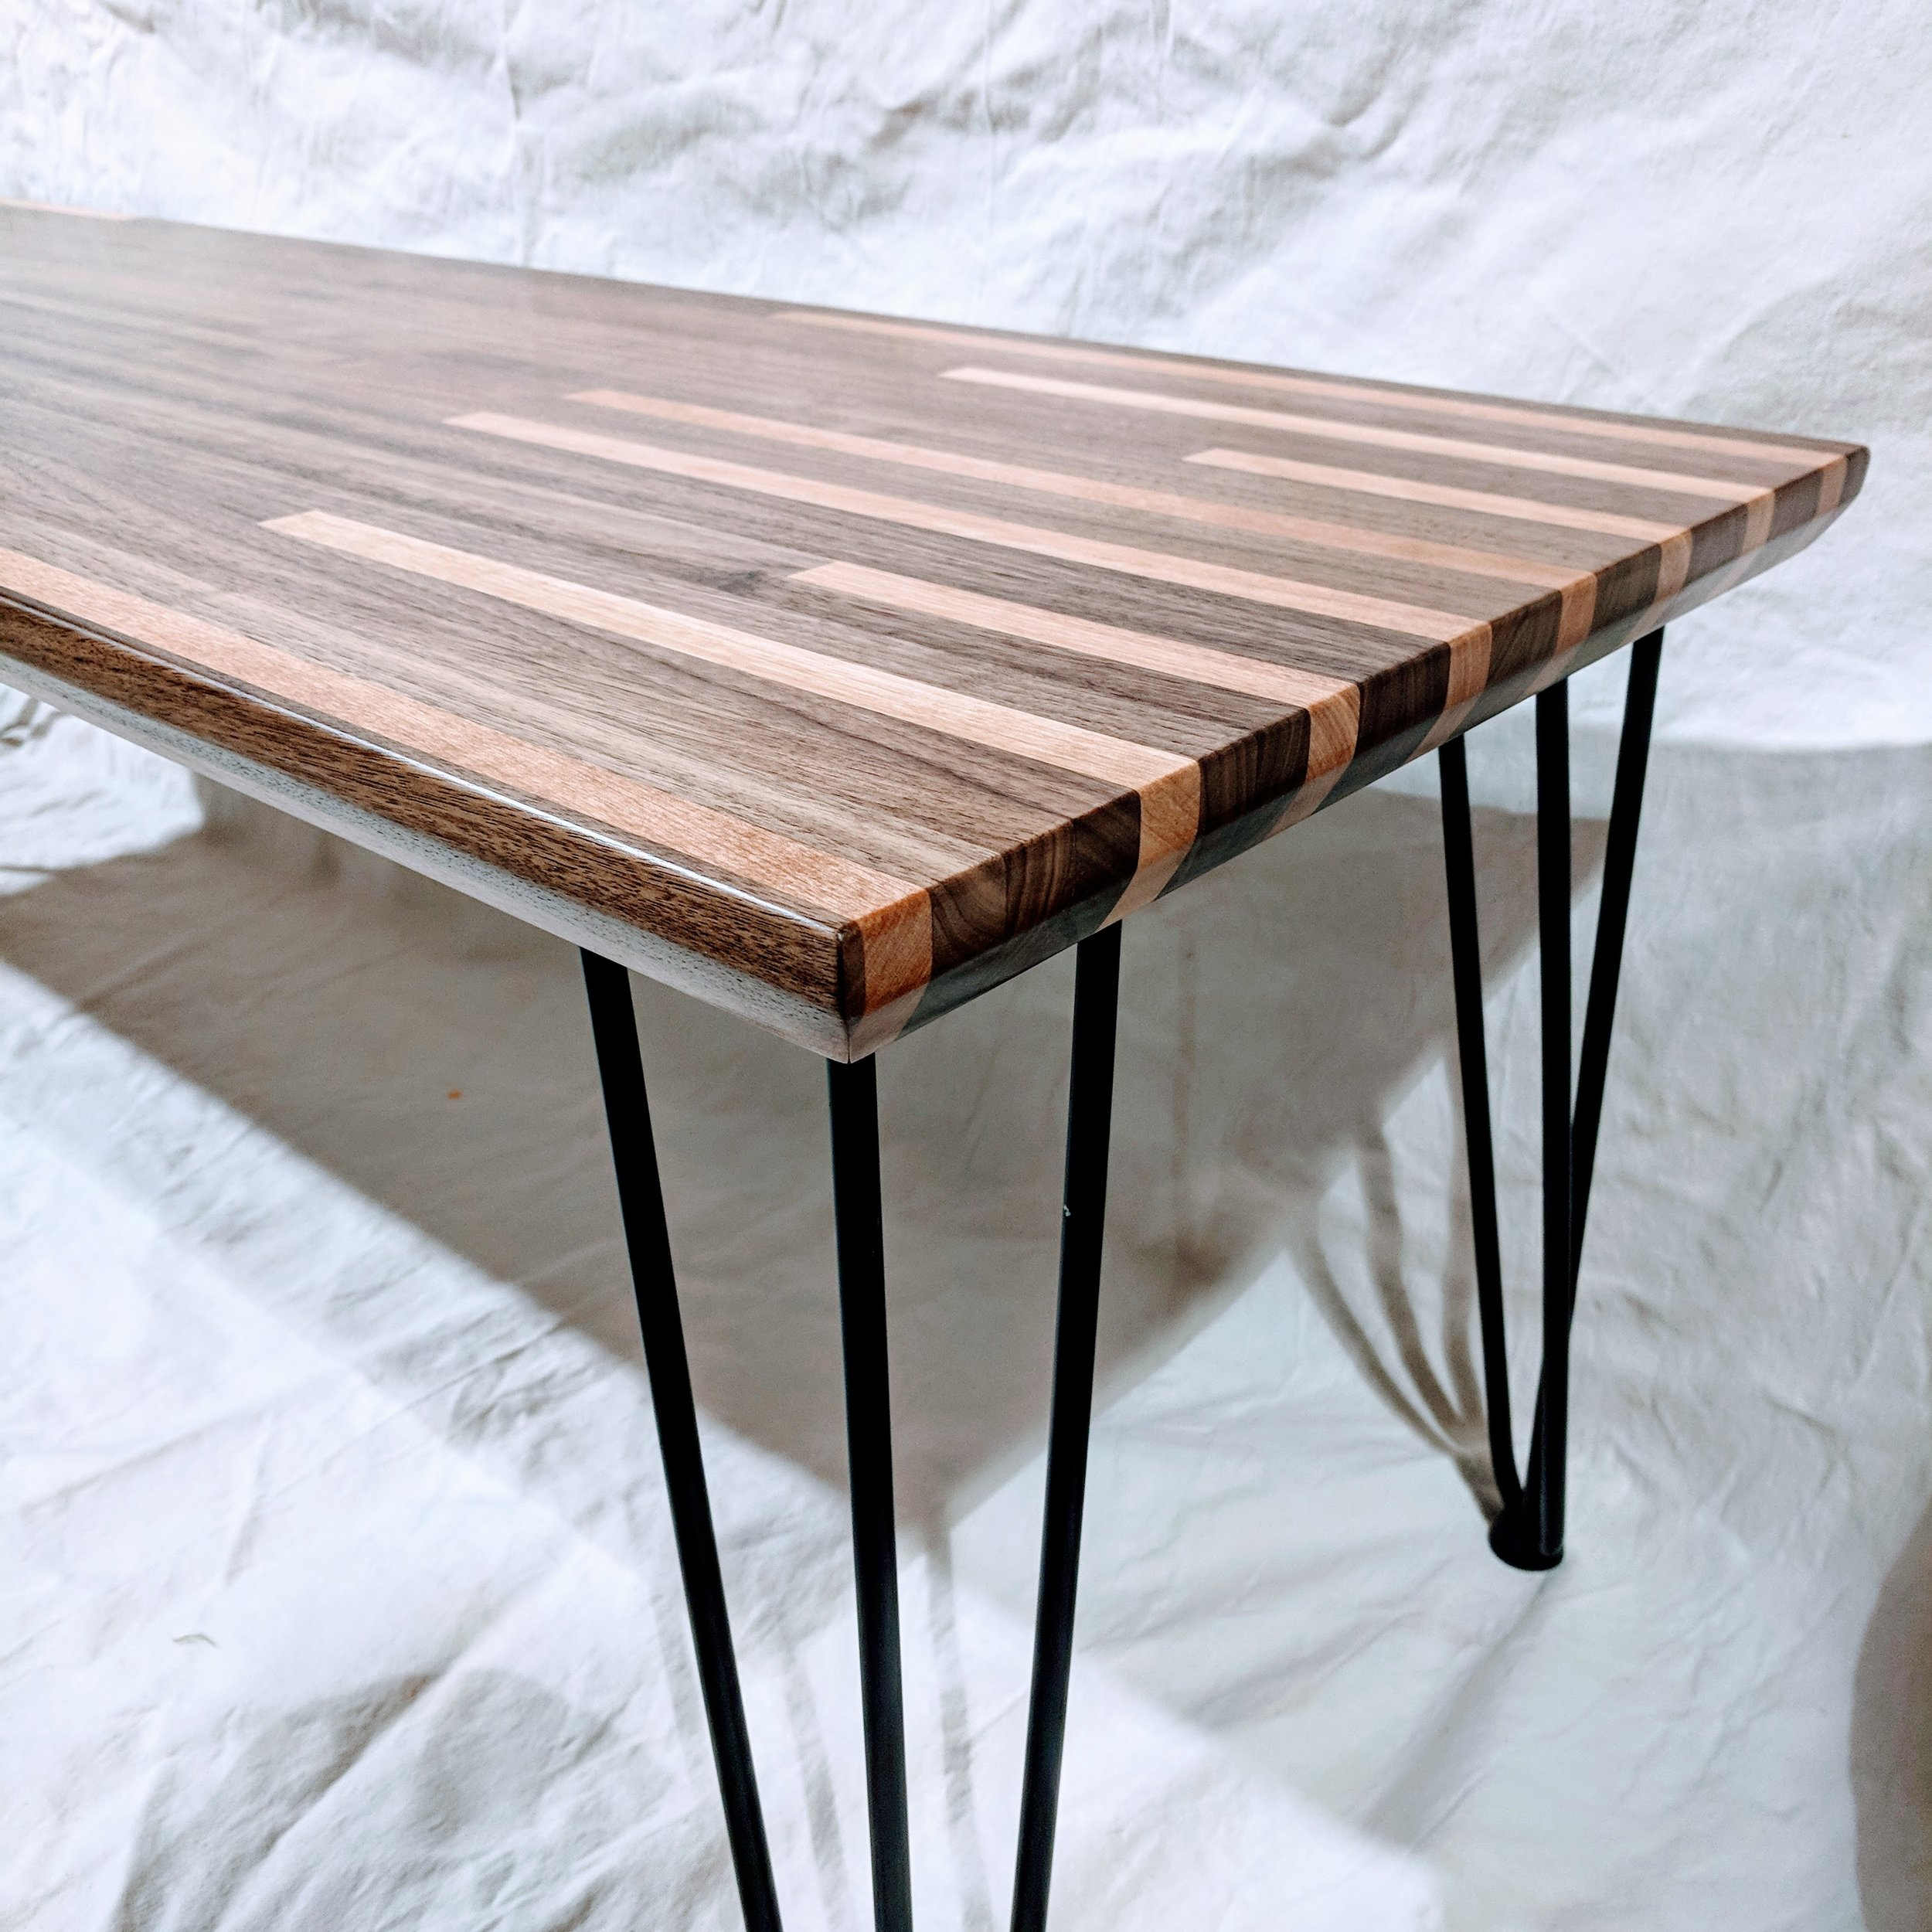 Fine Layered Project - Coffee Tables, Night Stands, Floating box shelves, and benches.